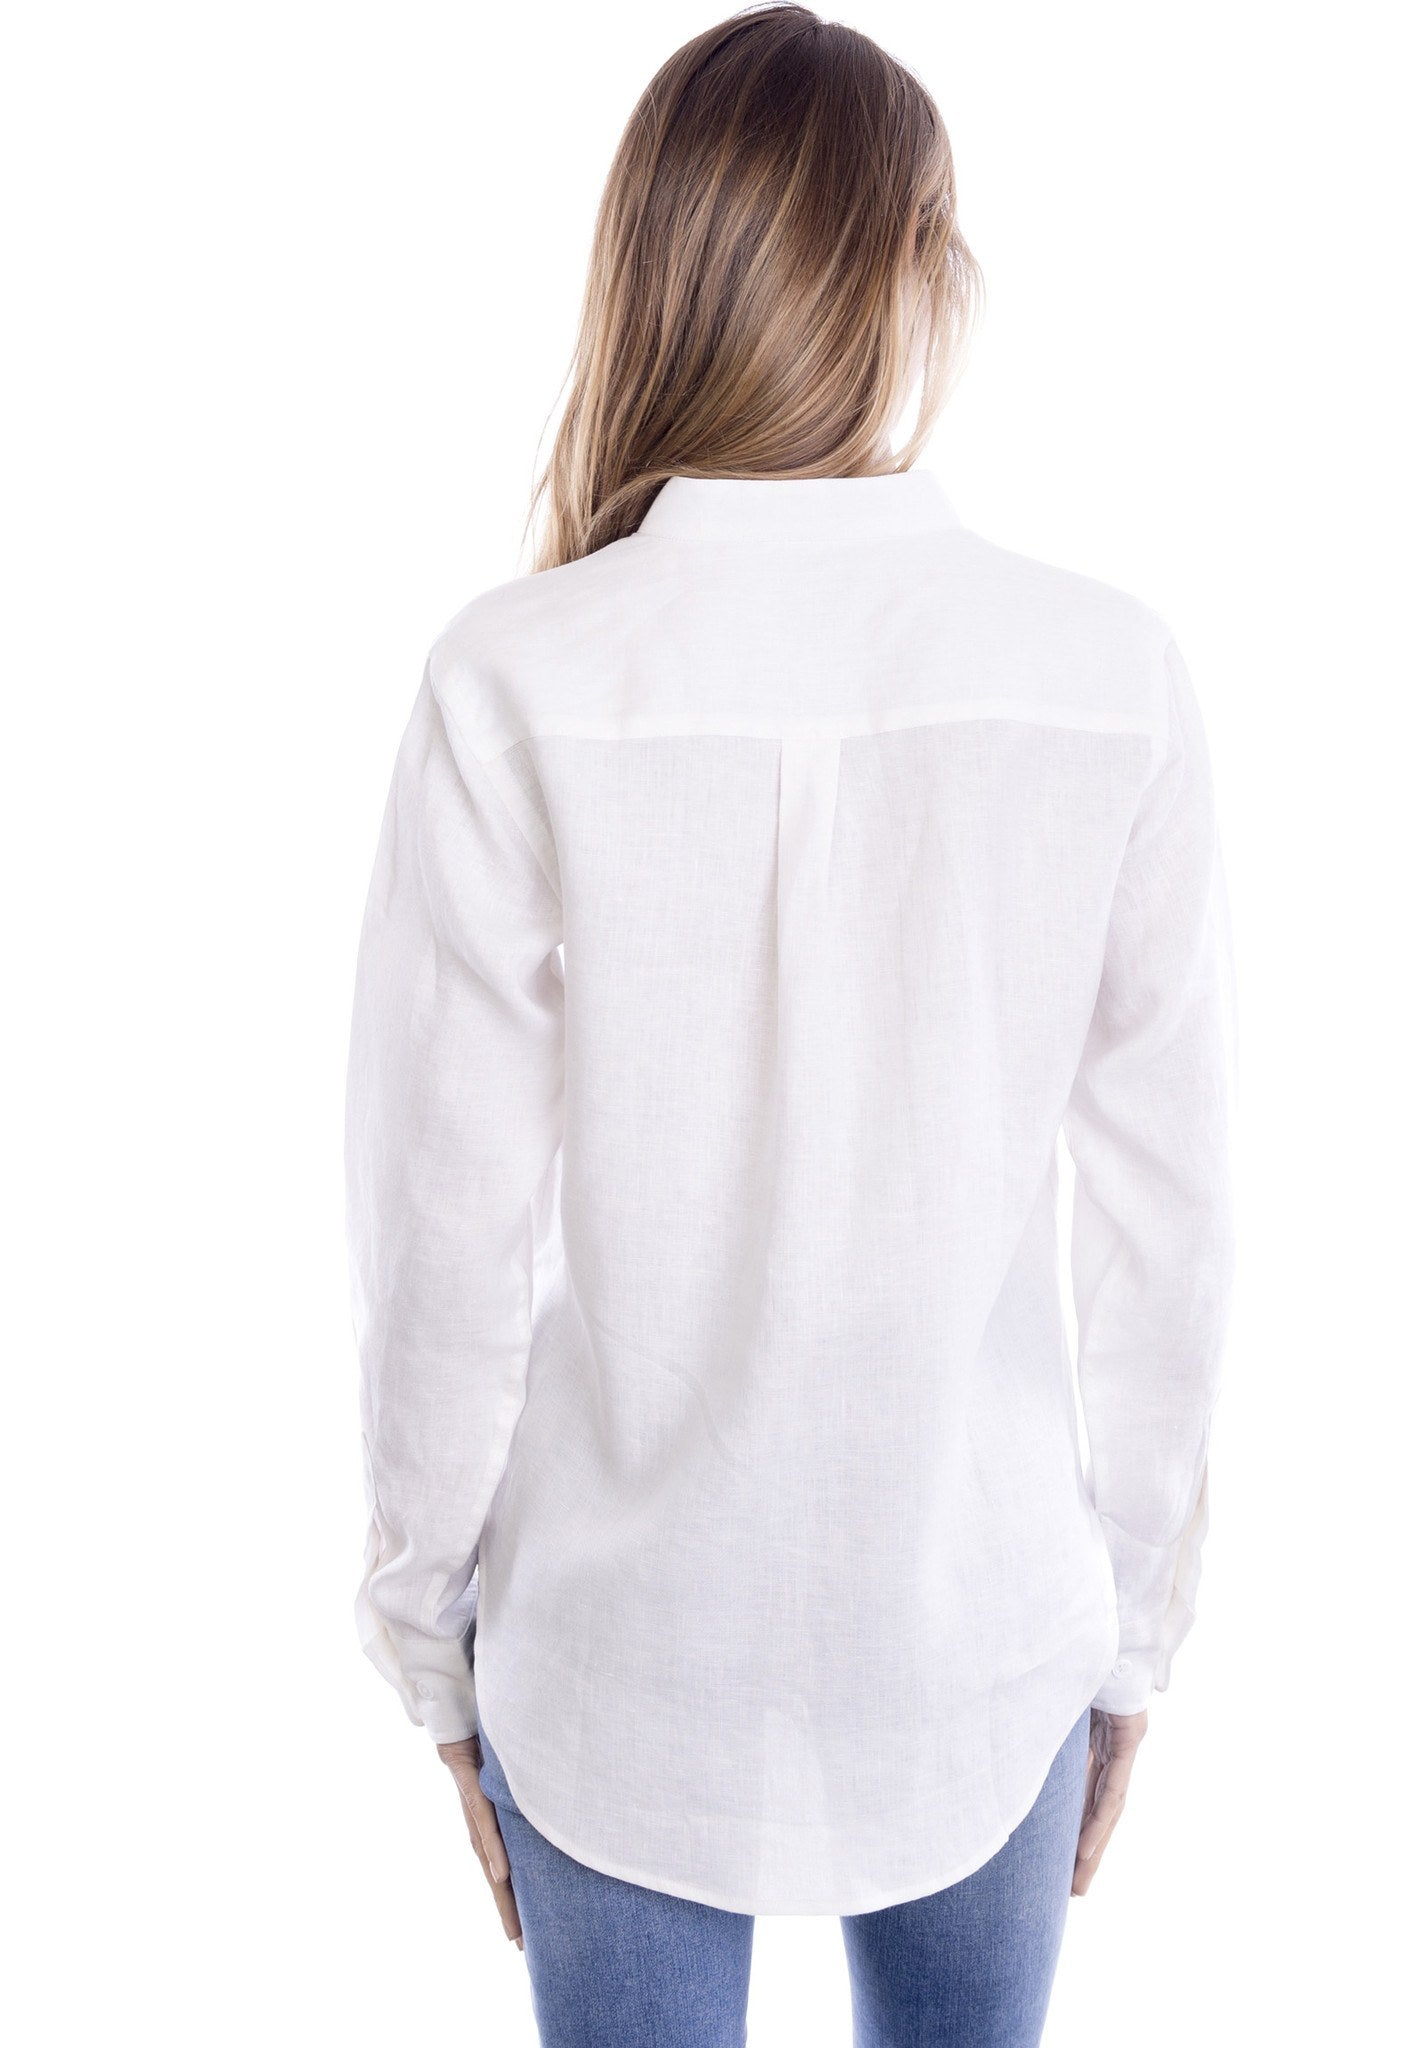 Lotus White Mandarin Collar Linen Shirt